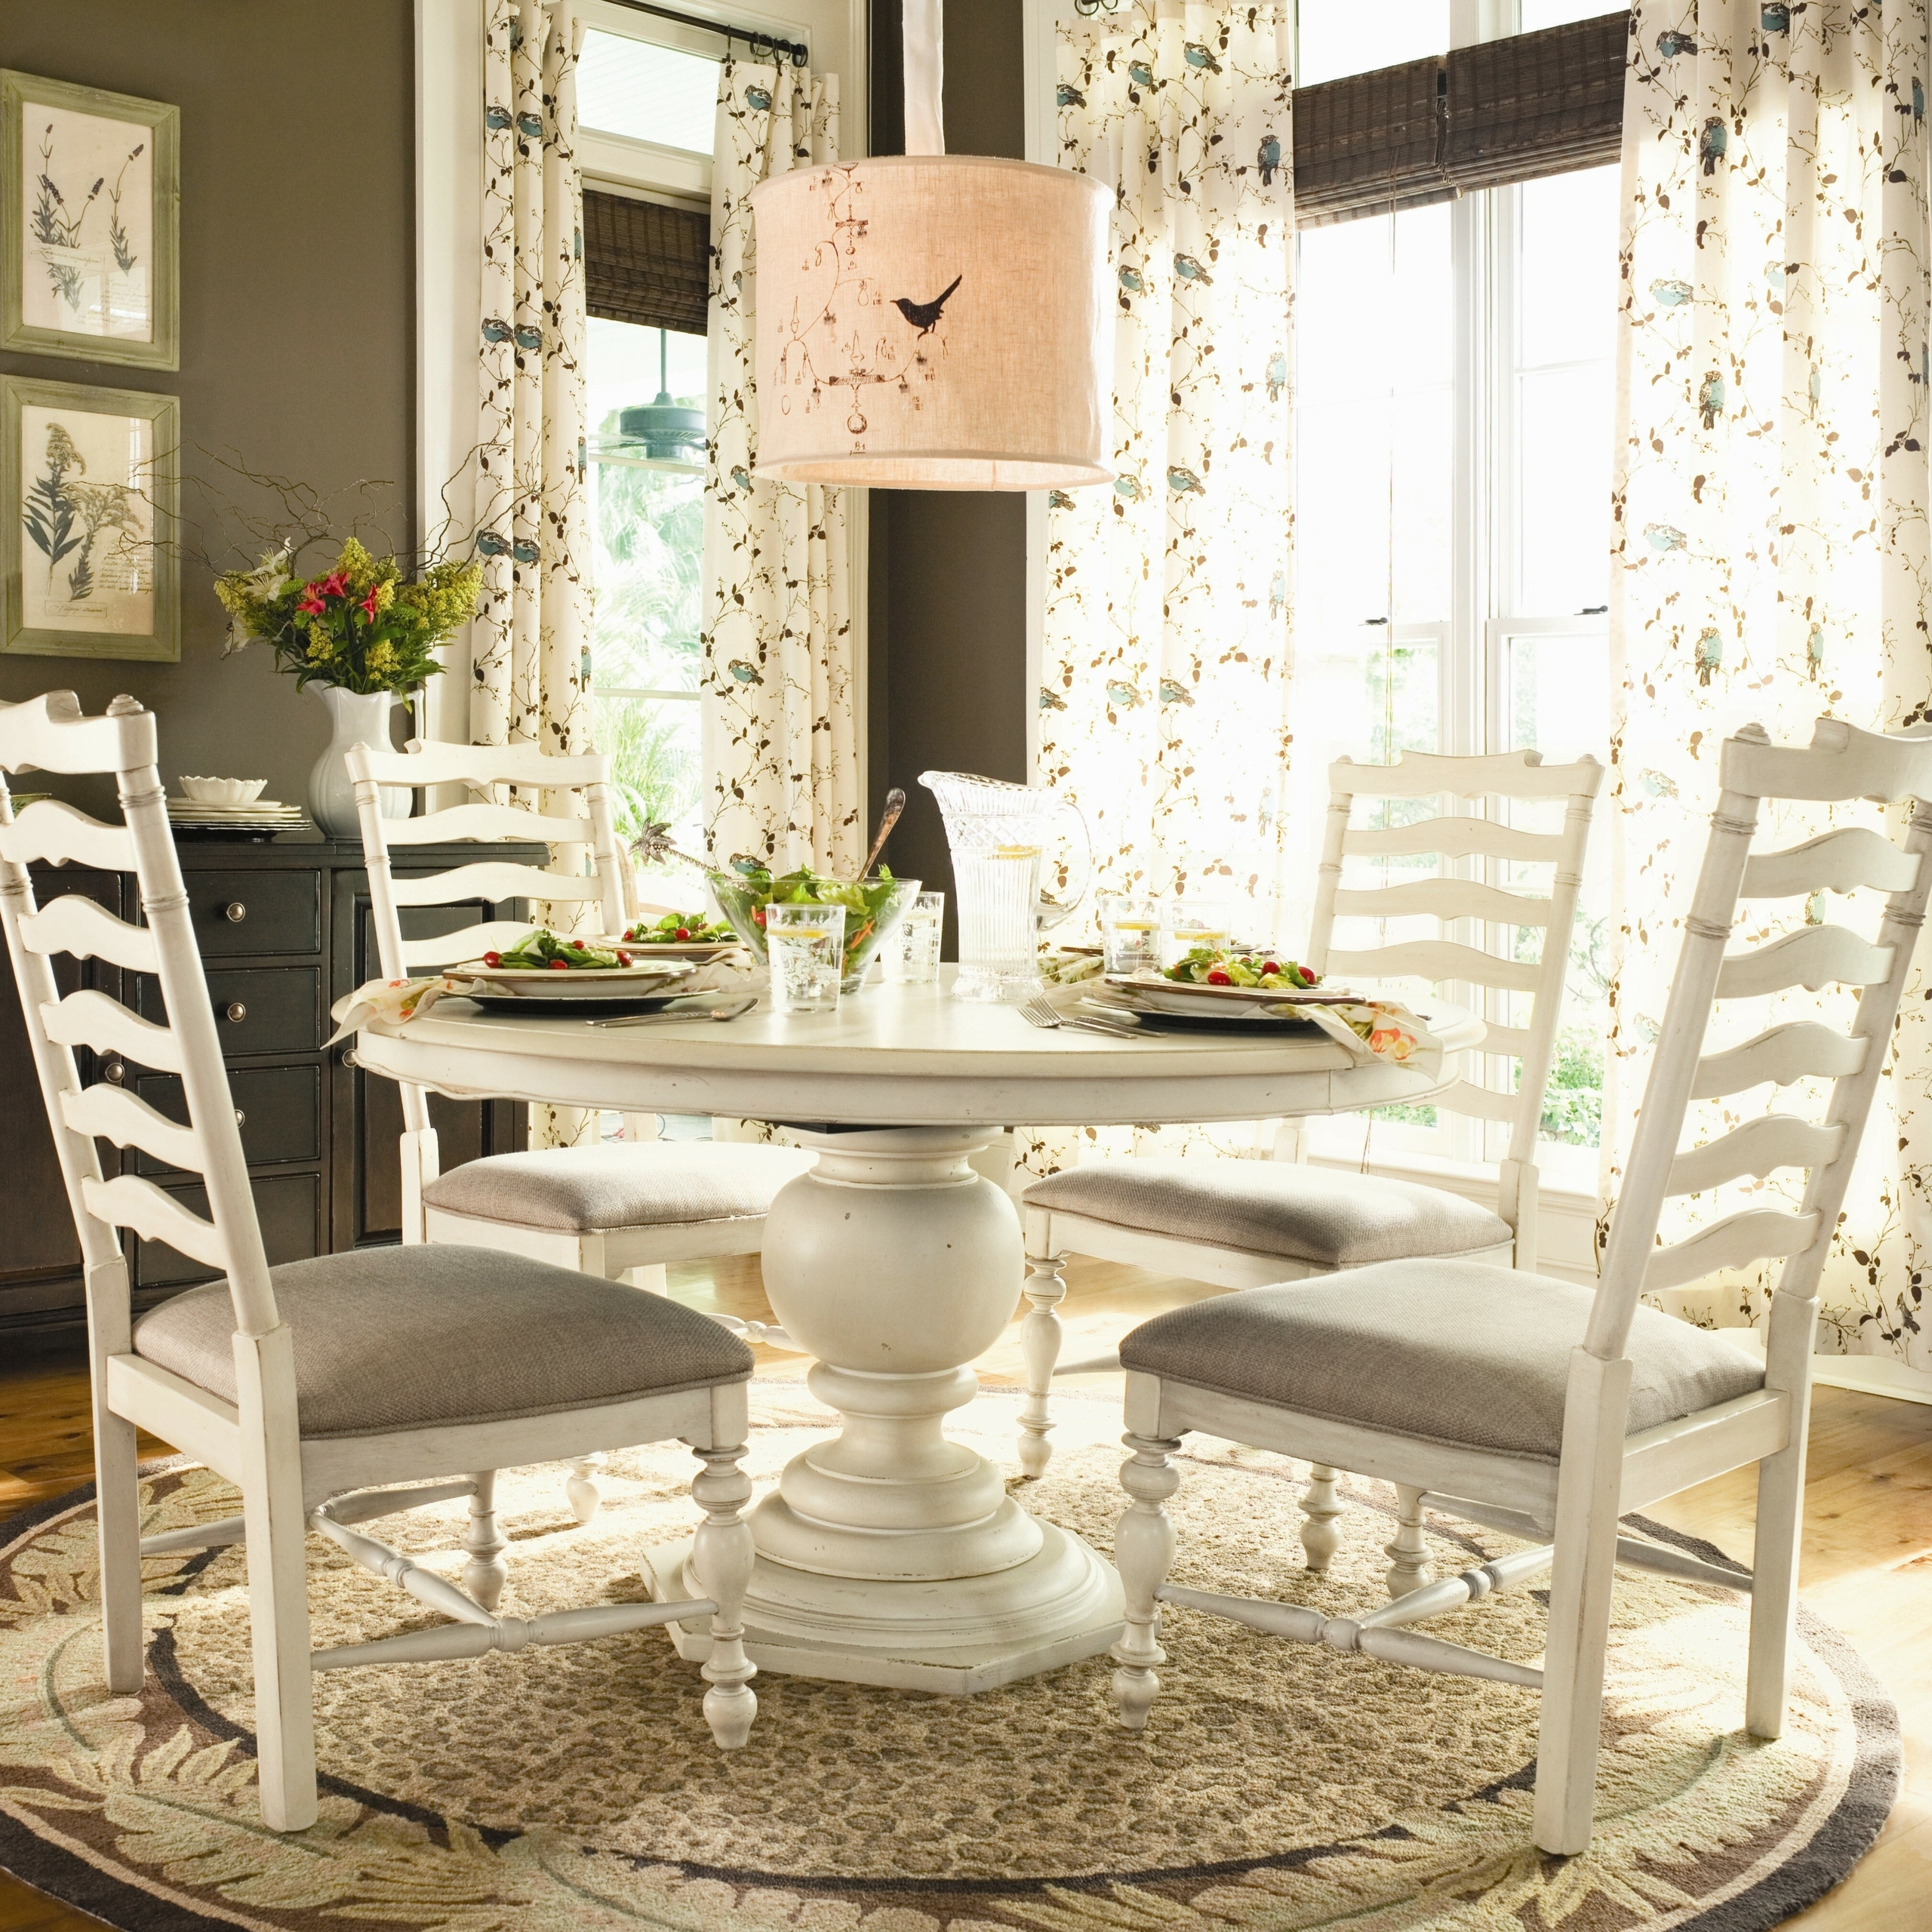 Exceptionnel Round White Pedestal Dining Table 2